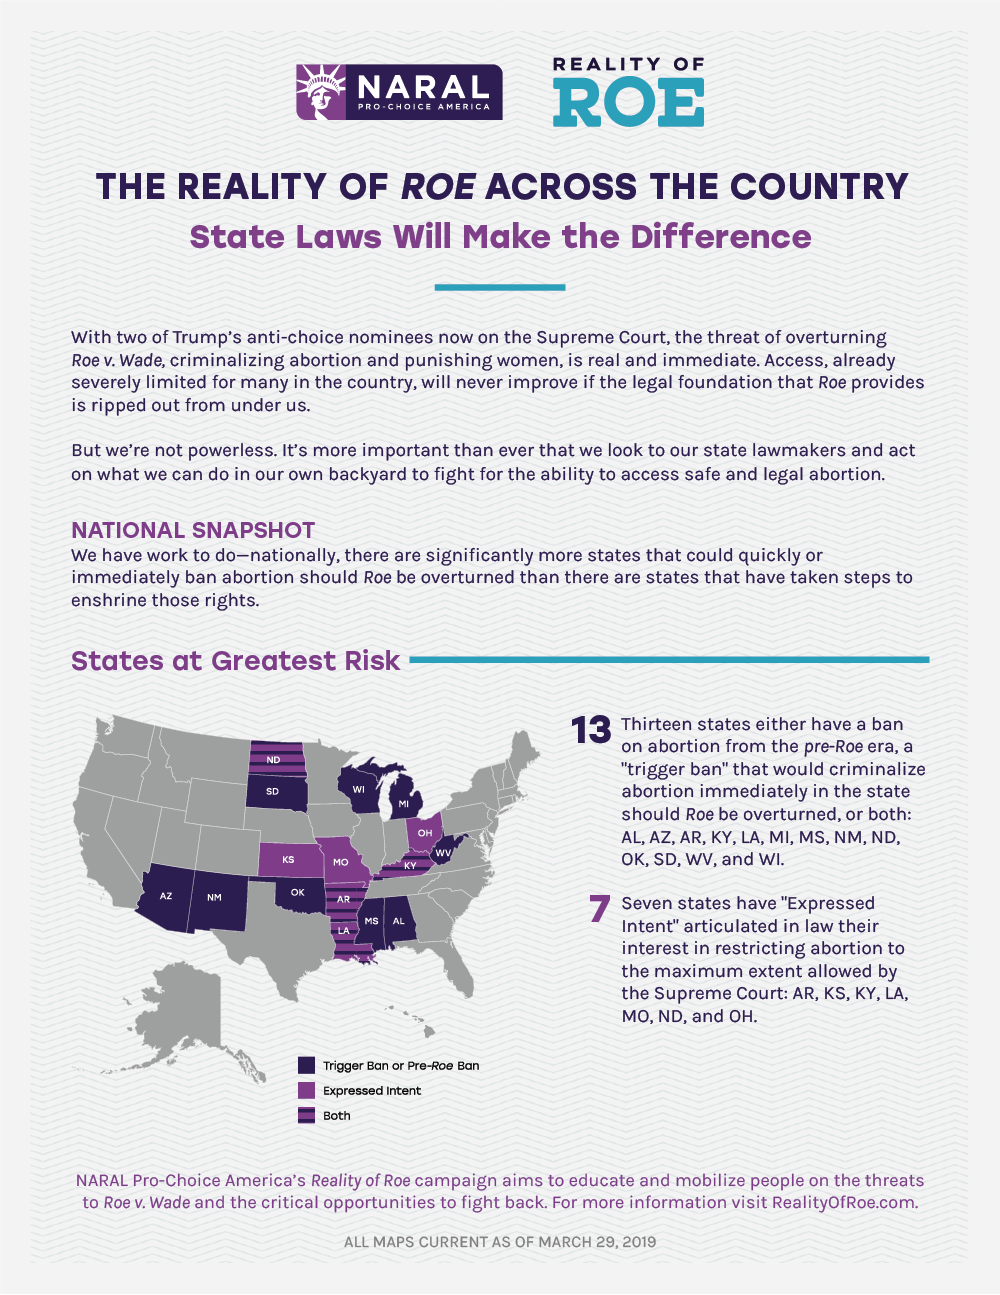 Reality of Roe Factsheet for NARAL Pro-Choice America. March 2019.  PDF